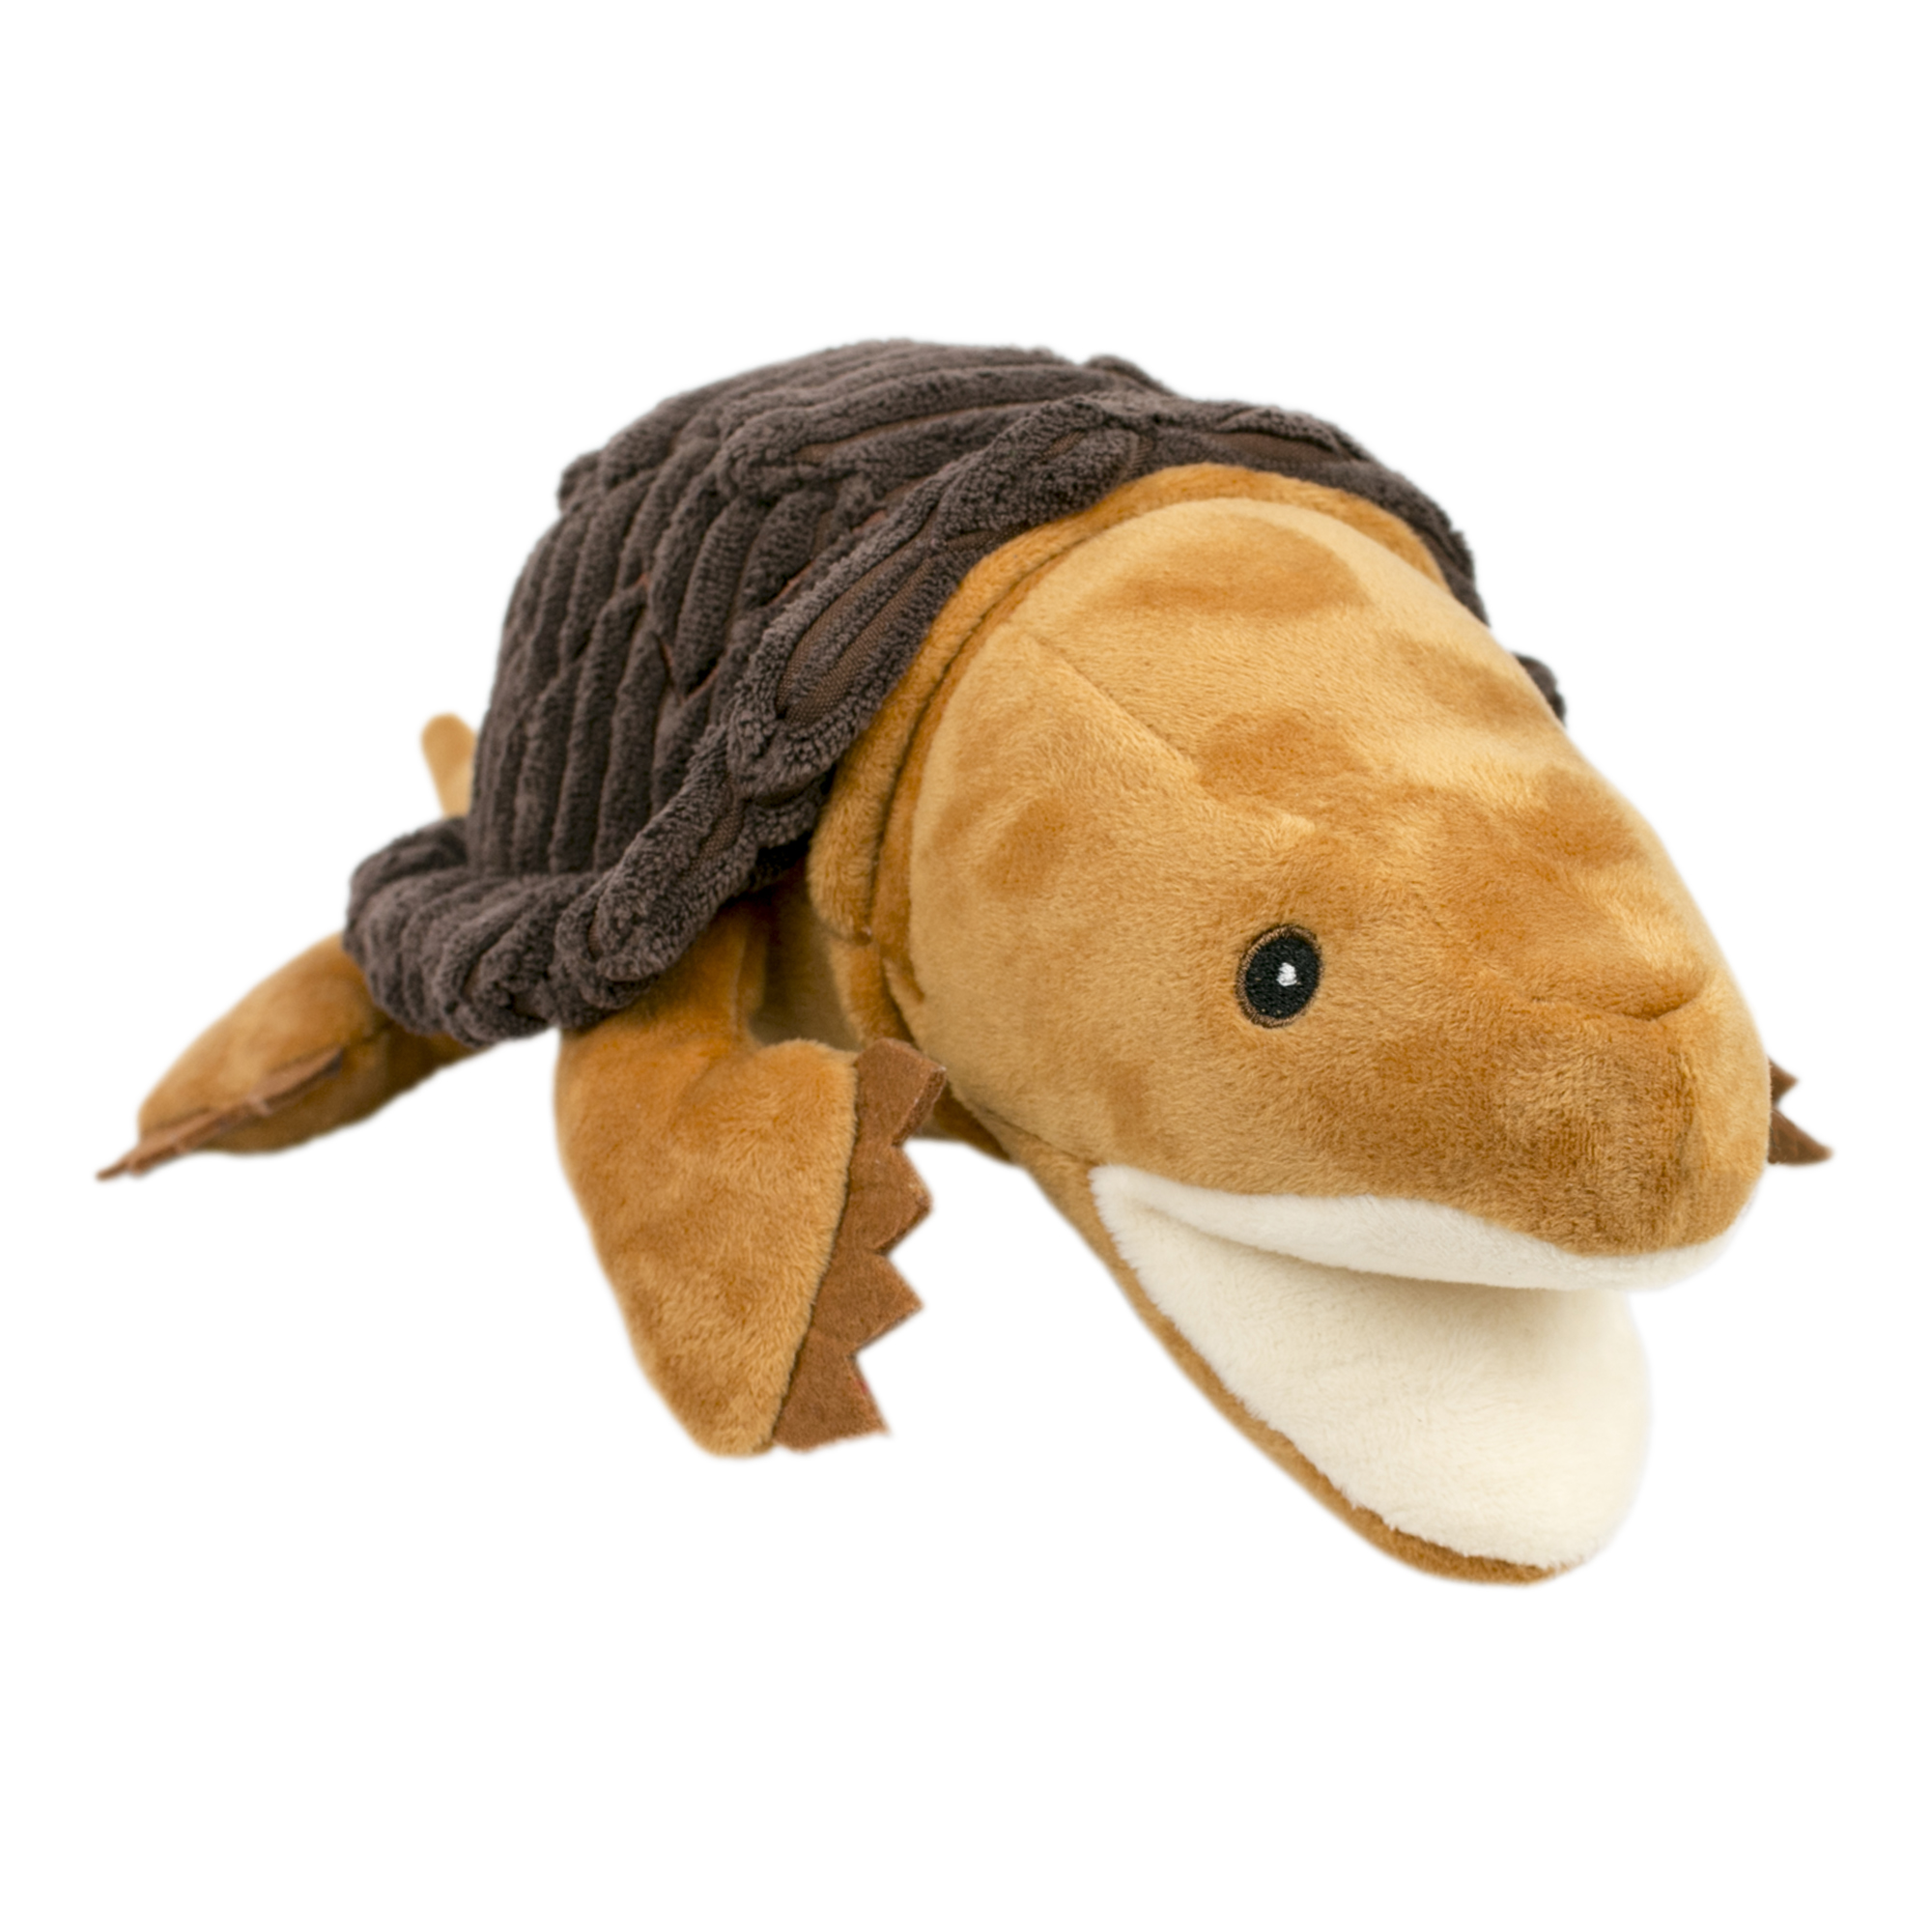 Tall Tails Crunch Snapper Dog Toy, 15-in